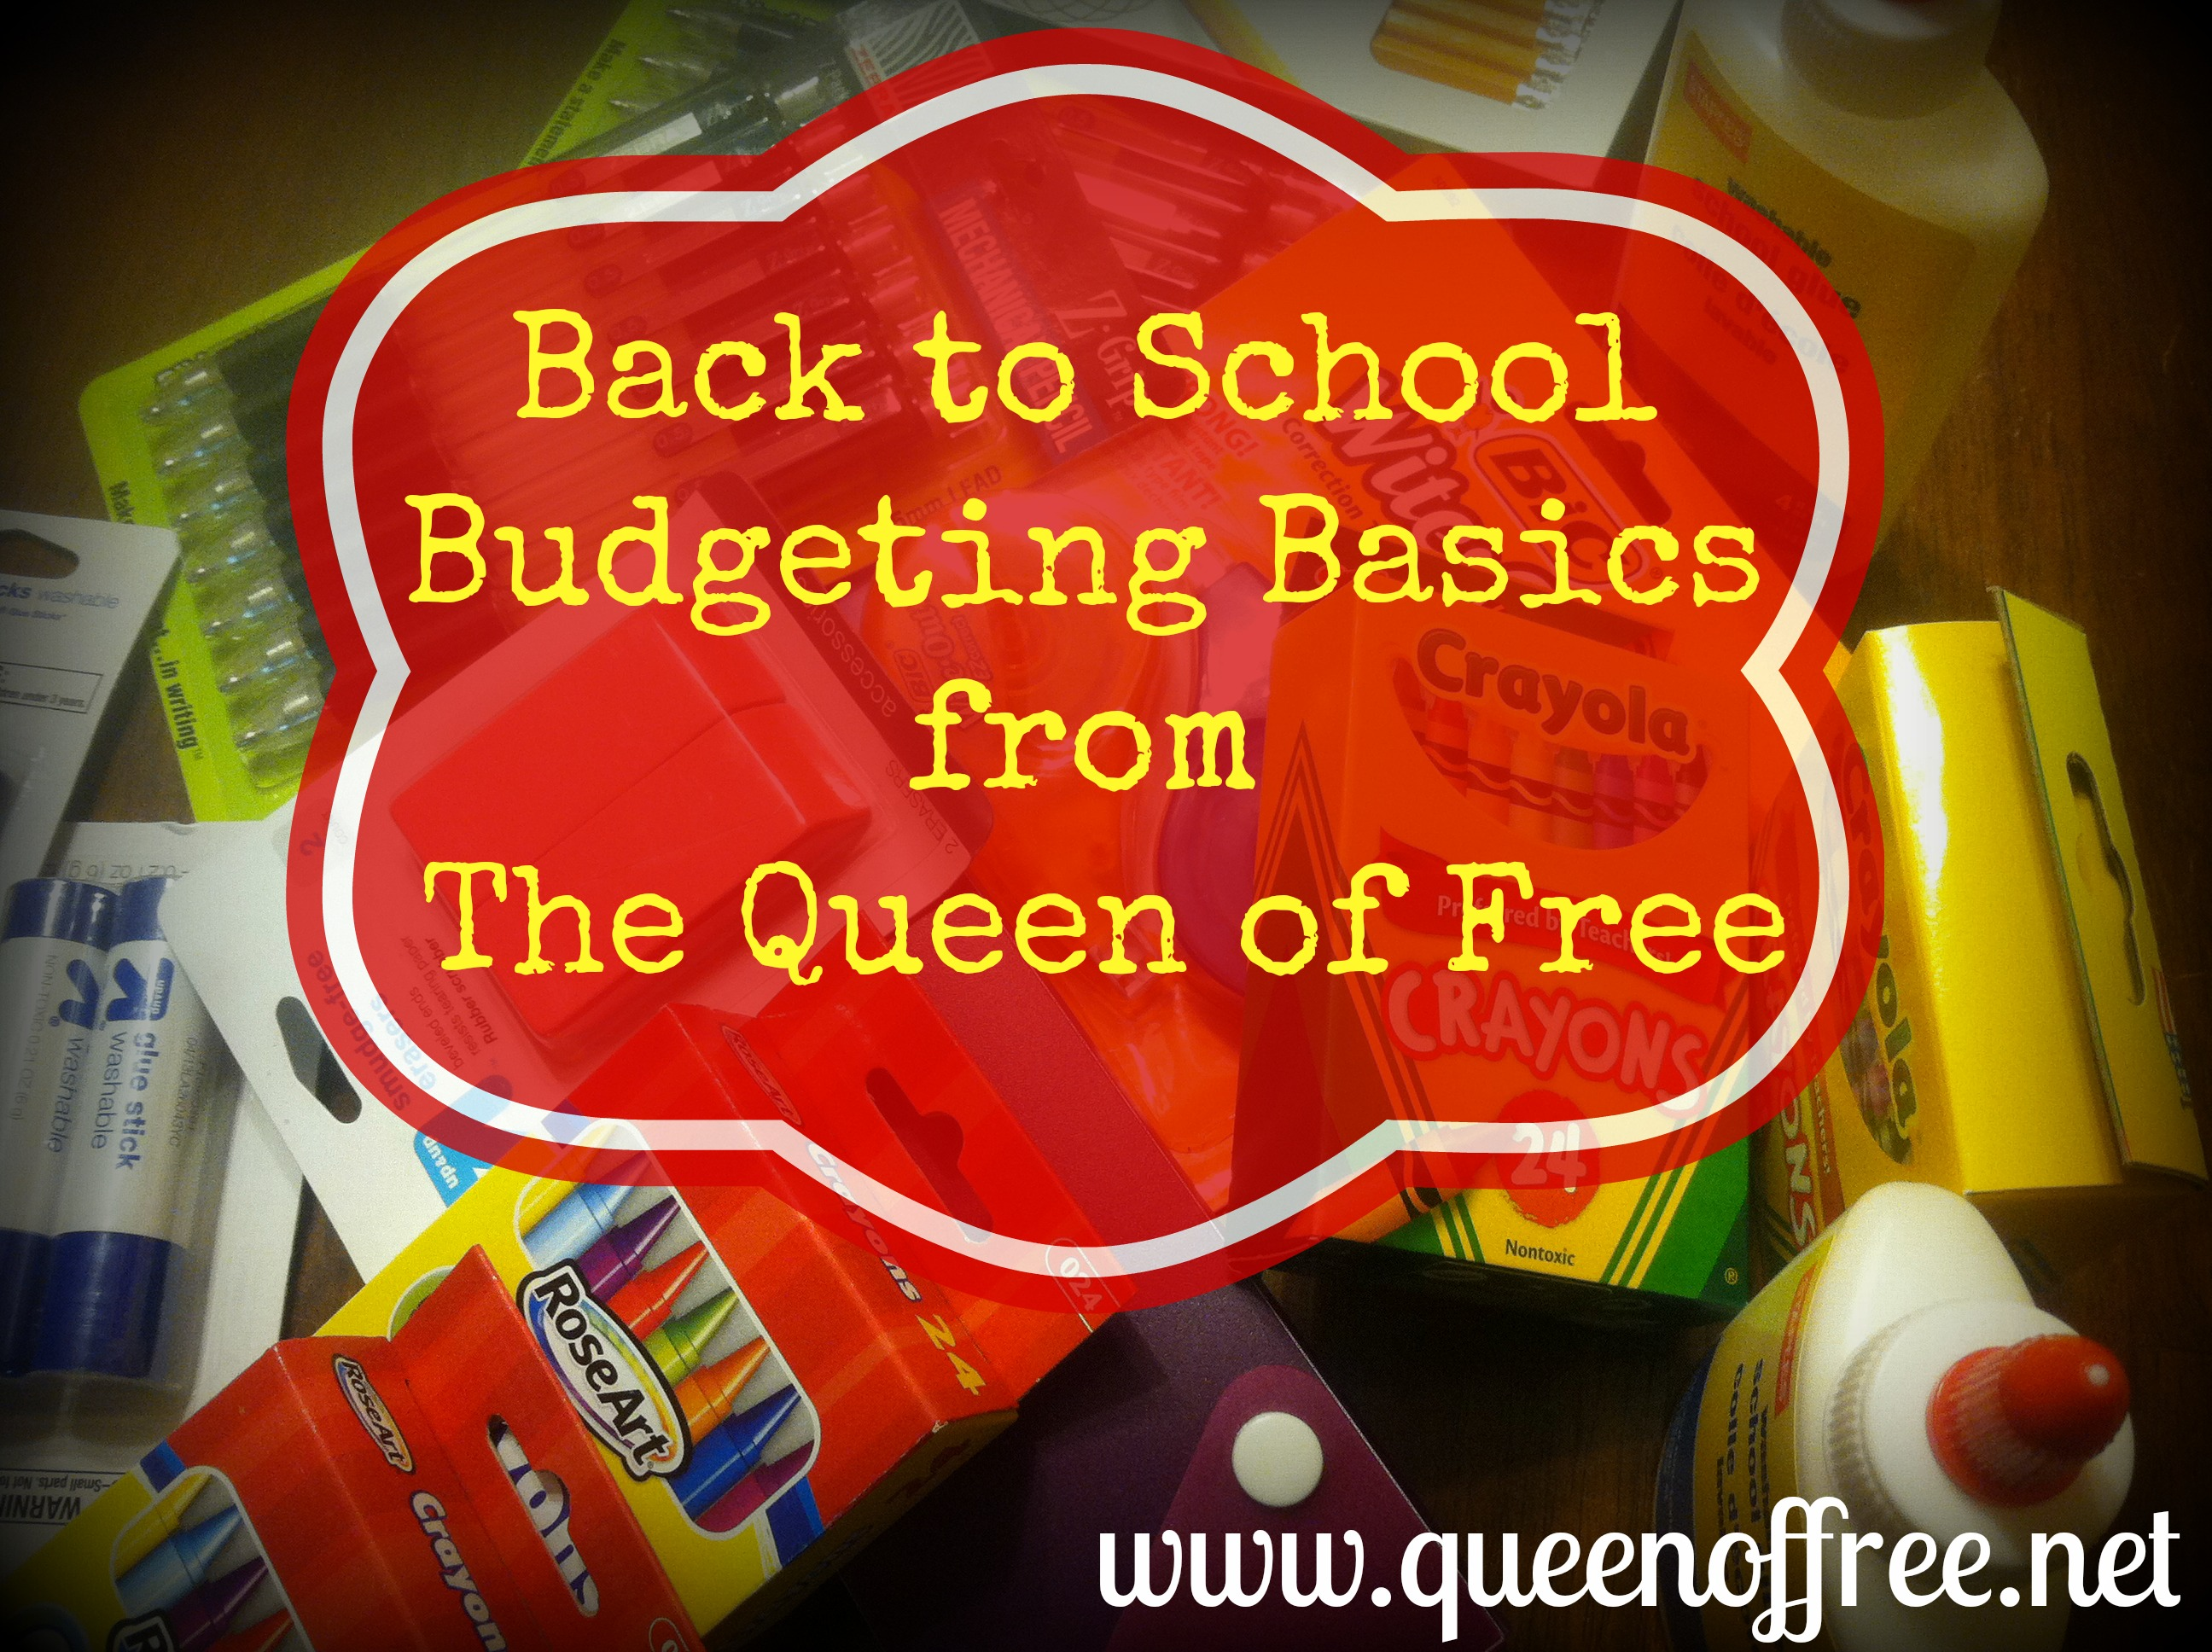 Don't know where to begin with Back to School Shopping? Start with these basic budget tips from @thequeenoffree